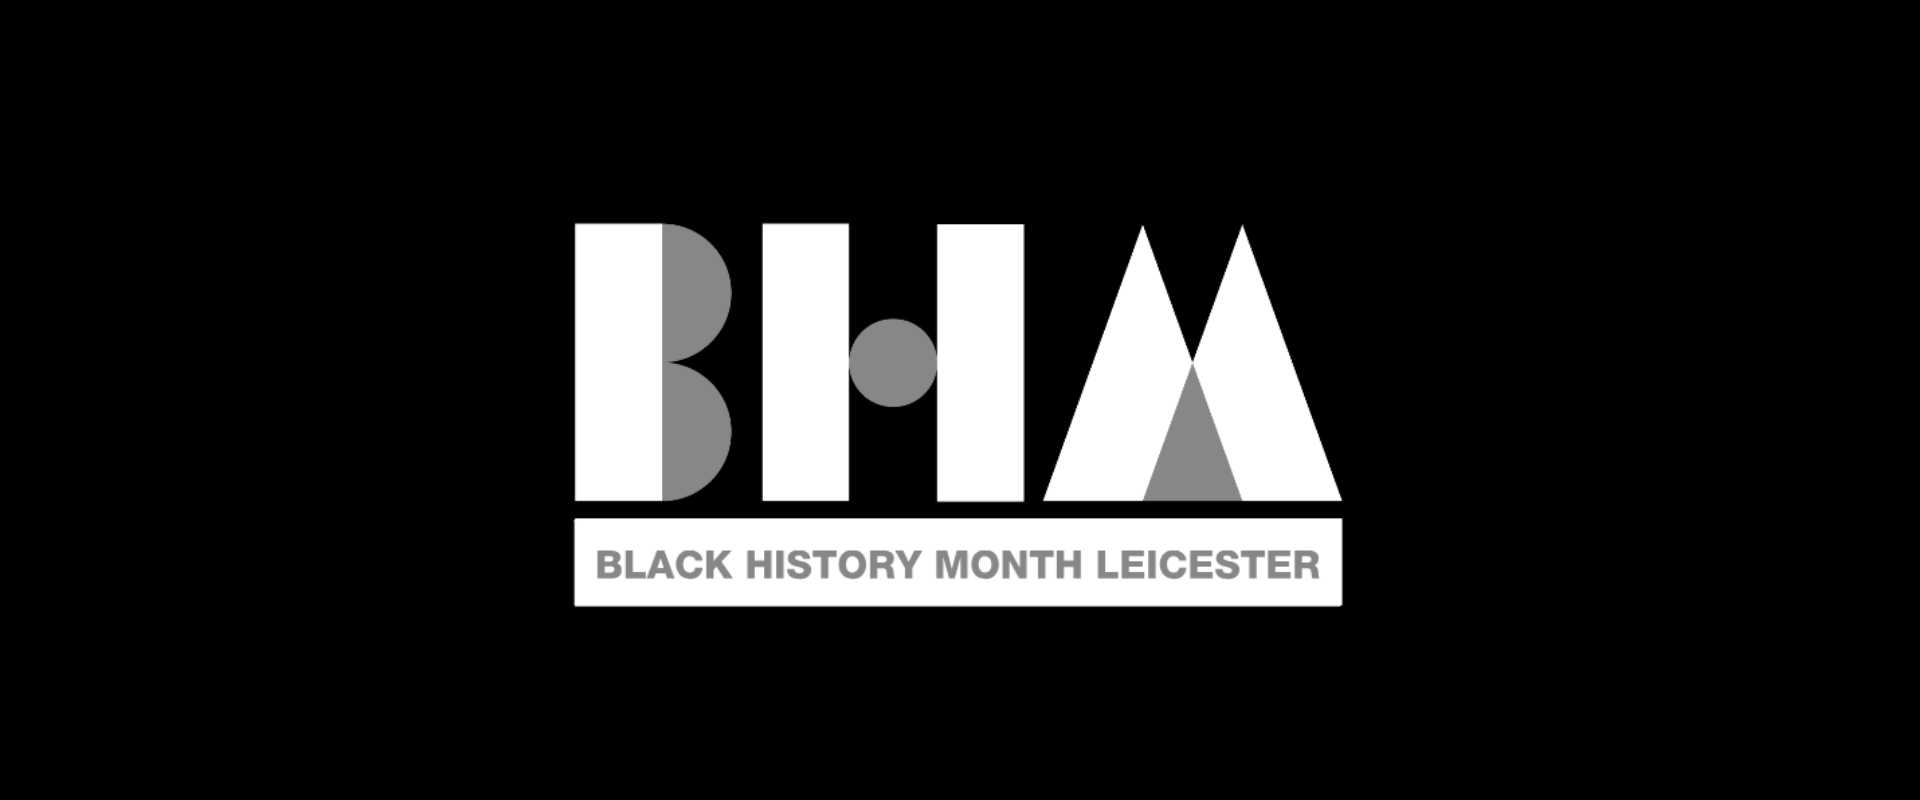 Black History Month Leicester — Page Banner